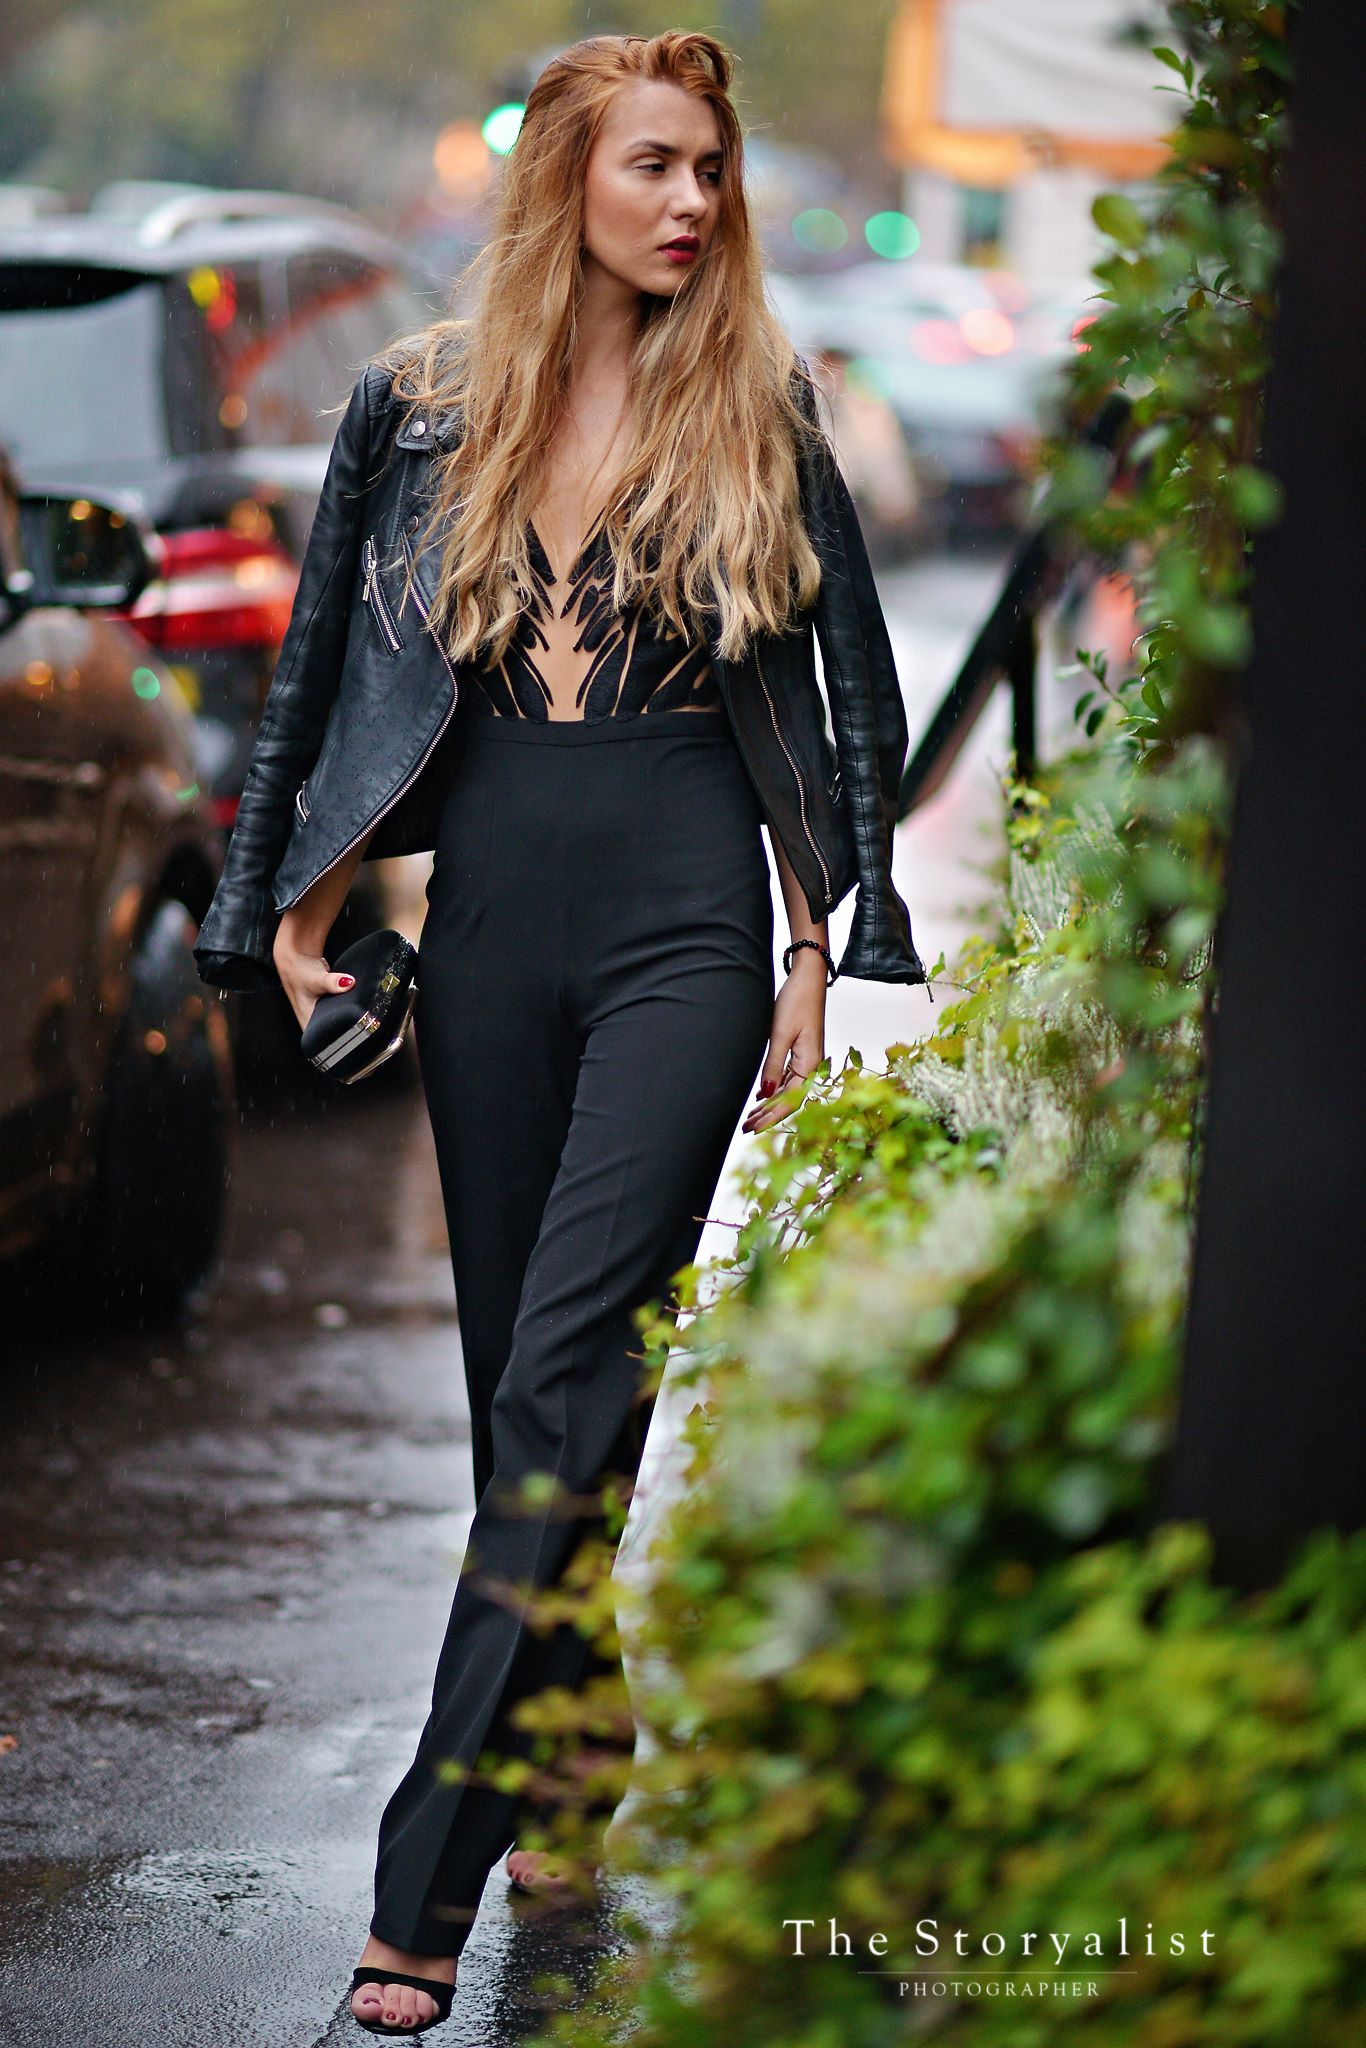 PFW, Paris Fashion Week, Alina Cernatescu, Romanian Designer, Fashion, style, street style , style blogger, blog, blogger, romanian blogger, Luana Codreanu, The Storyalist, Last Minute Couture, fashion blog, fashion blogger, stylish, trends, SS 2016, PFW SS 2016, all black outfit, outfit, OOTD, Mangrove, jumpsuit, new collection, leather jacket, Sonia Rykiel, fashion show, popular blog, outfit inspiration